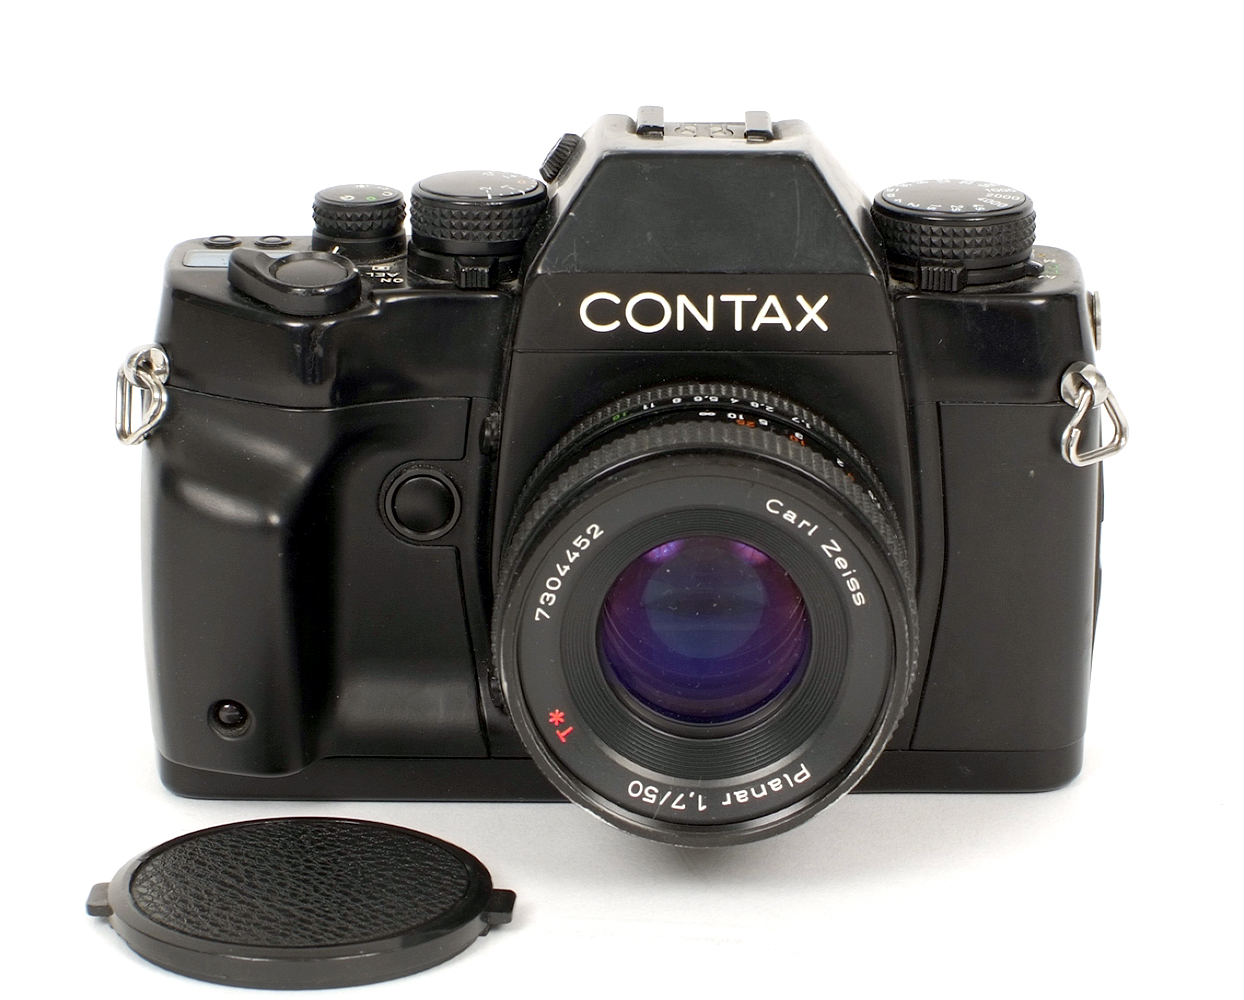 Lot 12 - Contax RX 35mm SLR Body. #009880 with CZ Planar 50mm f1.7 lens (condition 5/6F).